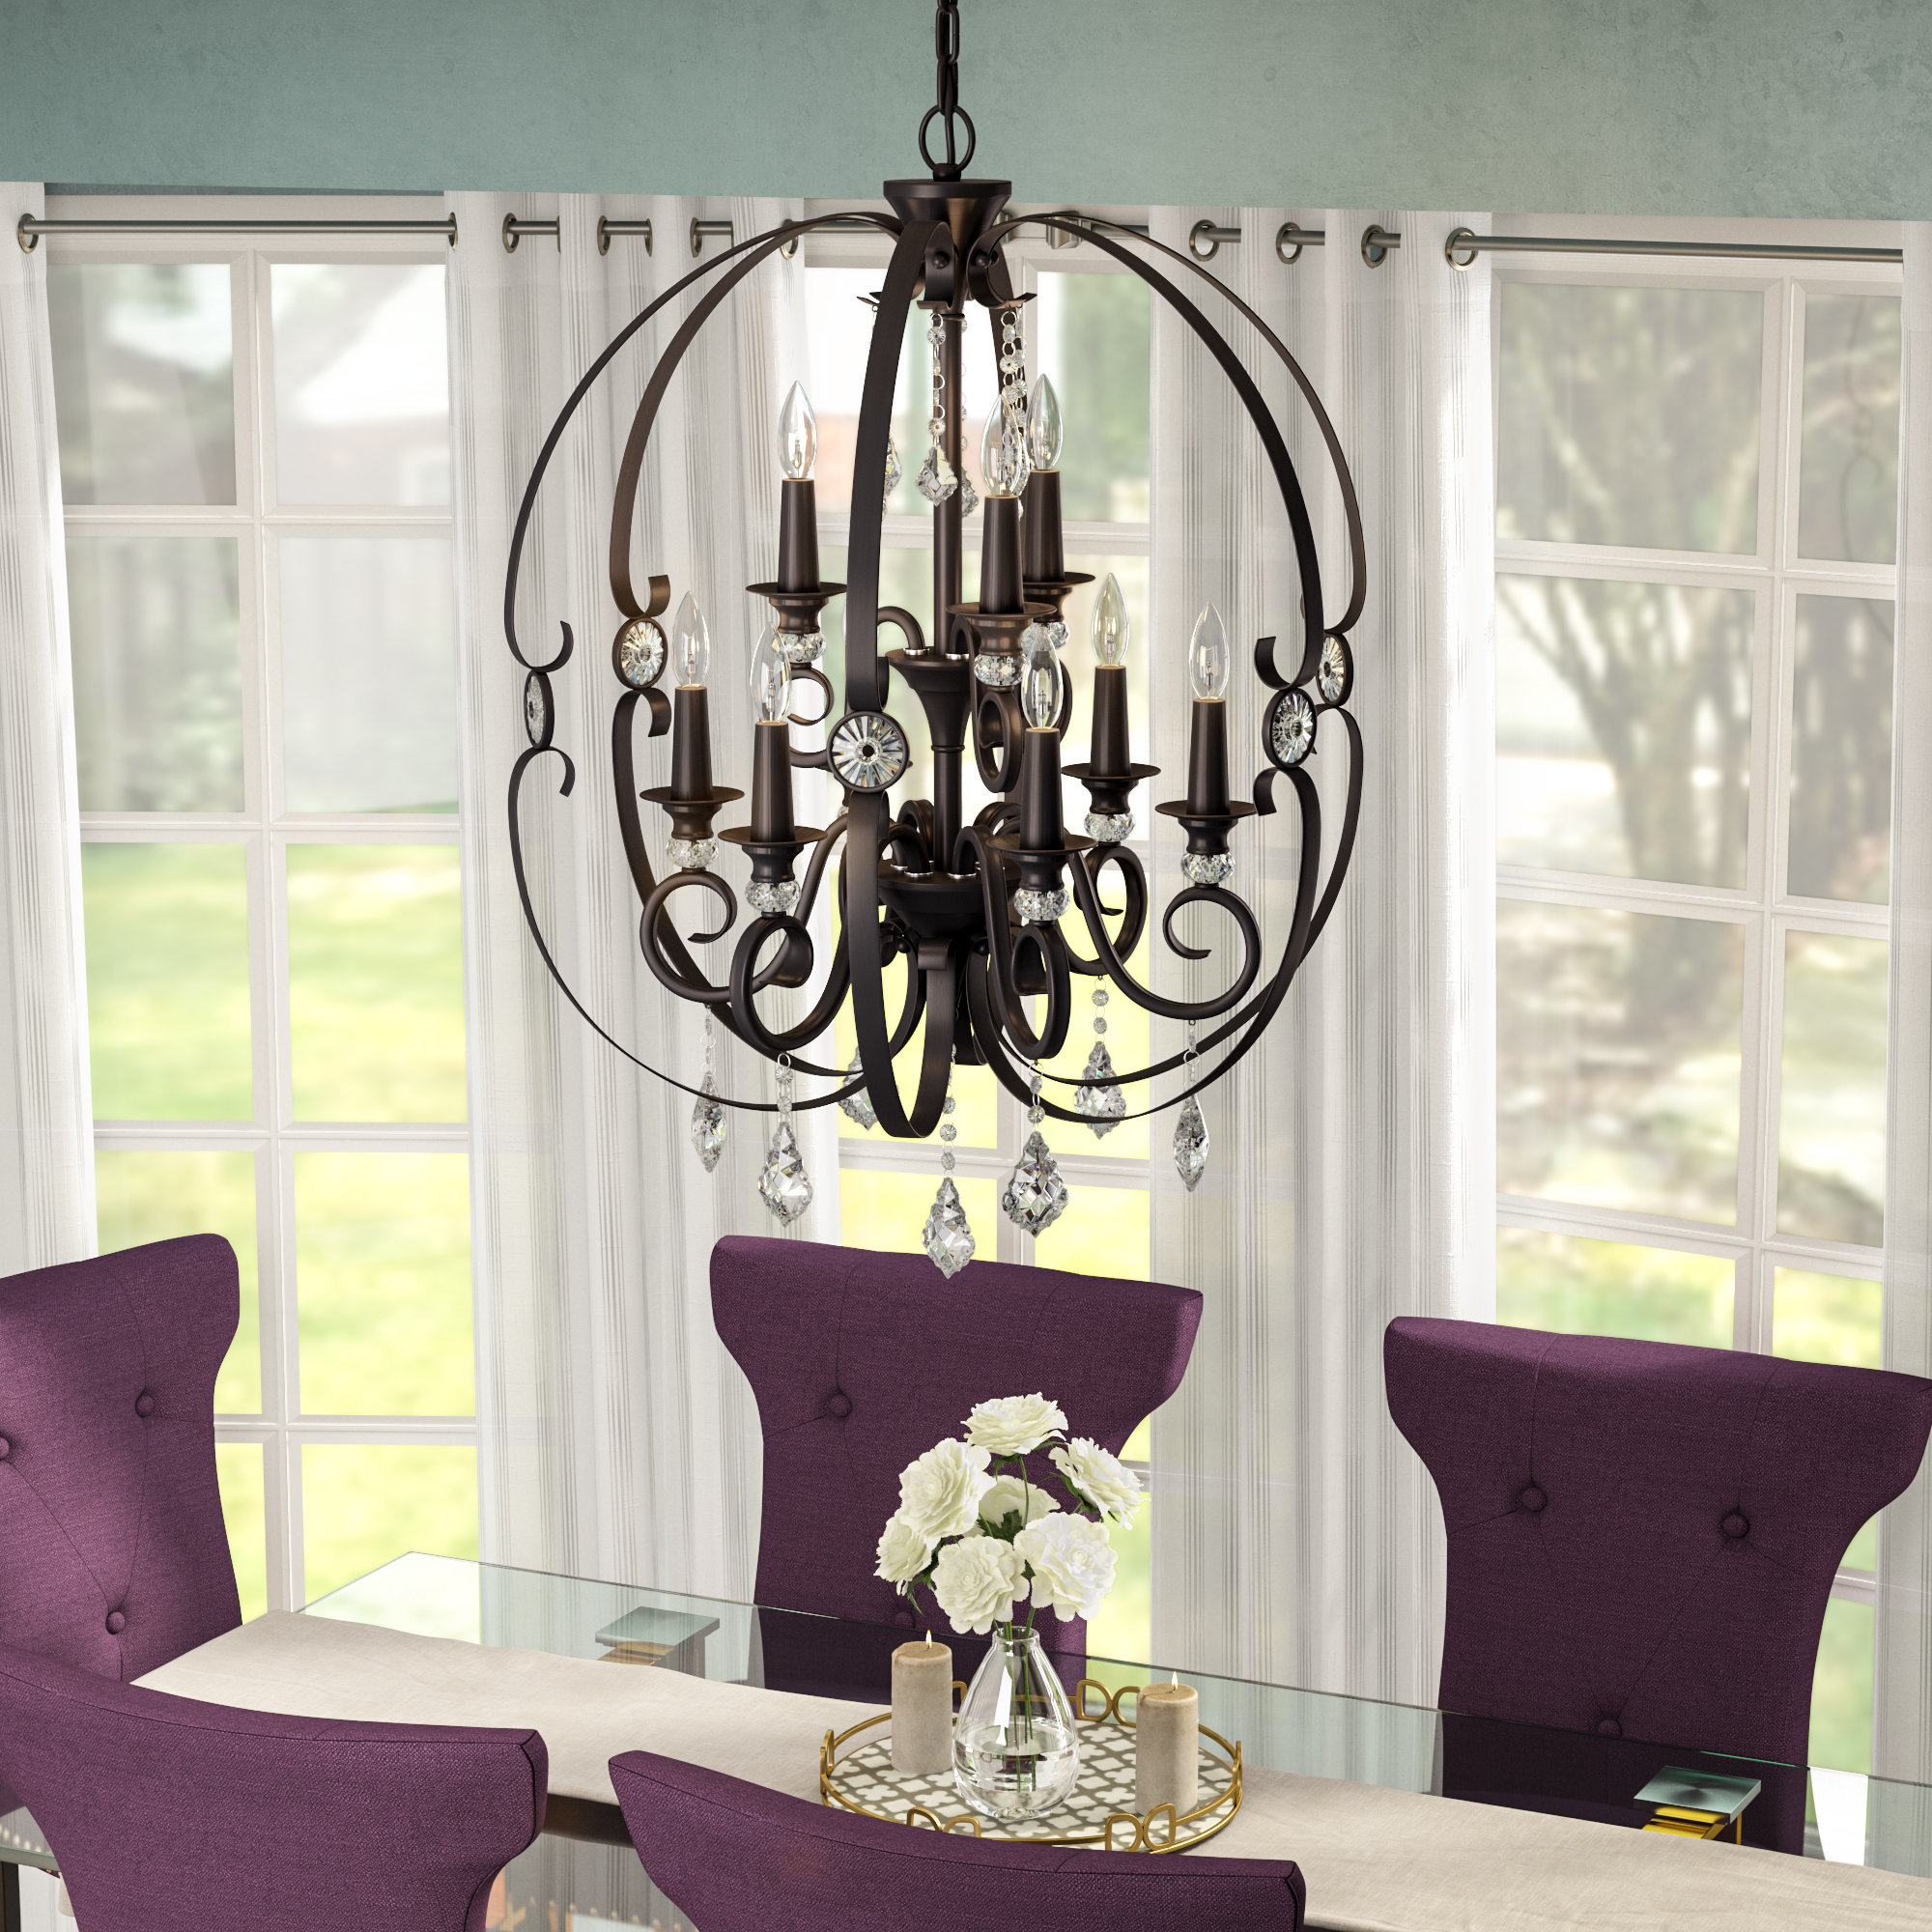 Mcknight 9 Light Chandelier | Wayfair with regard to Mcknight 9-Light Chandeliers (Image 20 of 30)